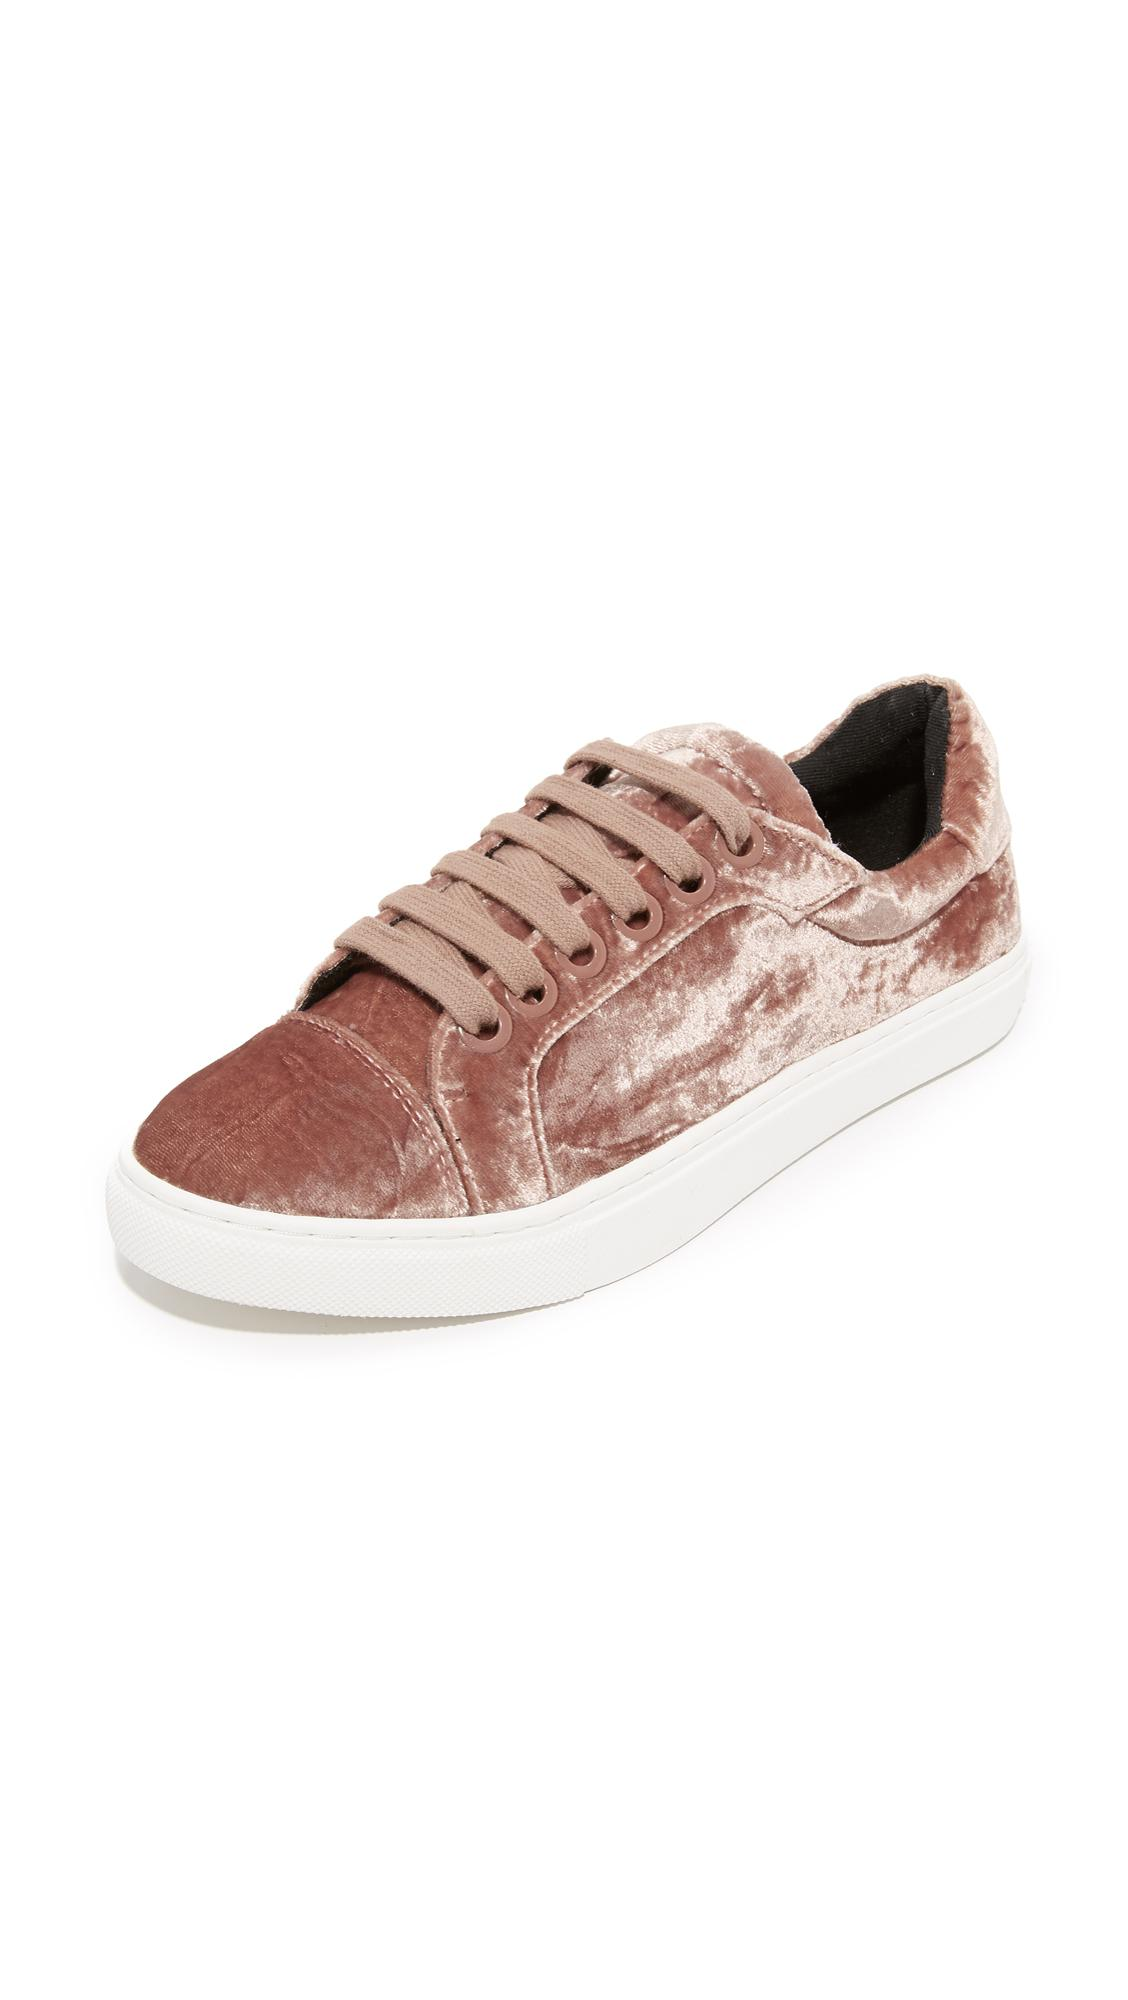 Rebecca Minkoff Velvet Low-Top Sneakers free shipping genuine newest online new arrival cheap online cheap outlet store taBs6f